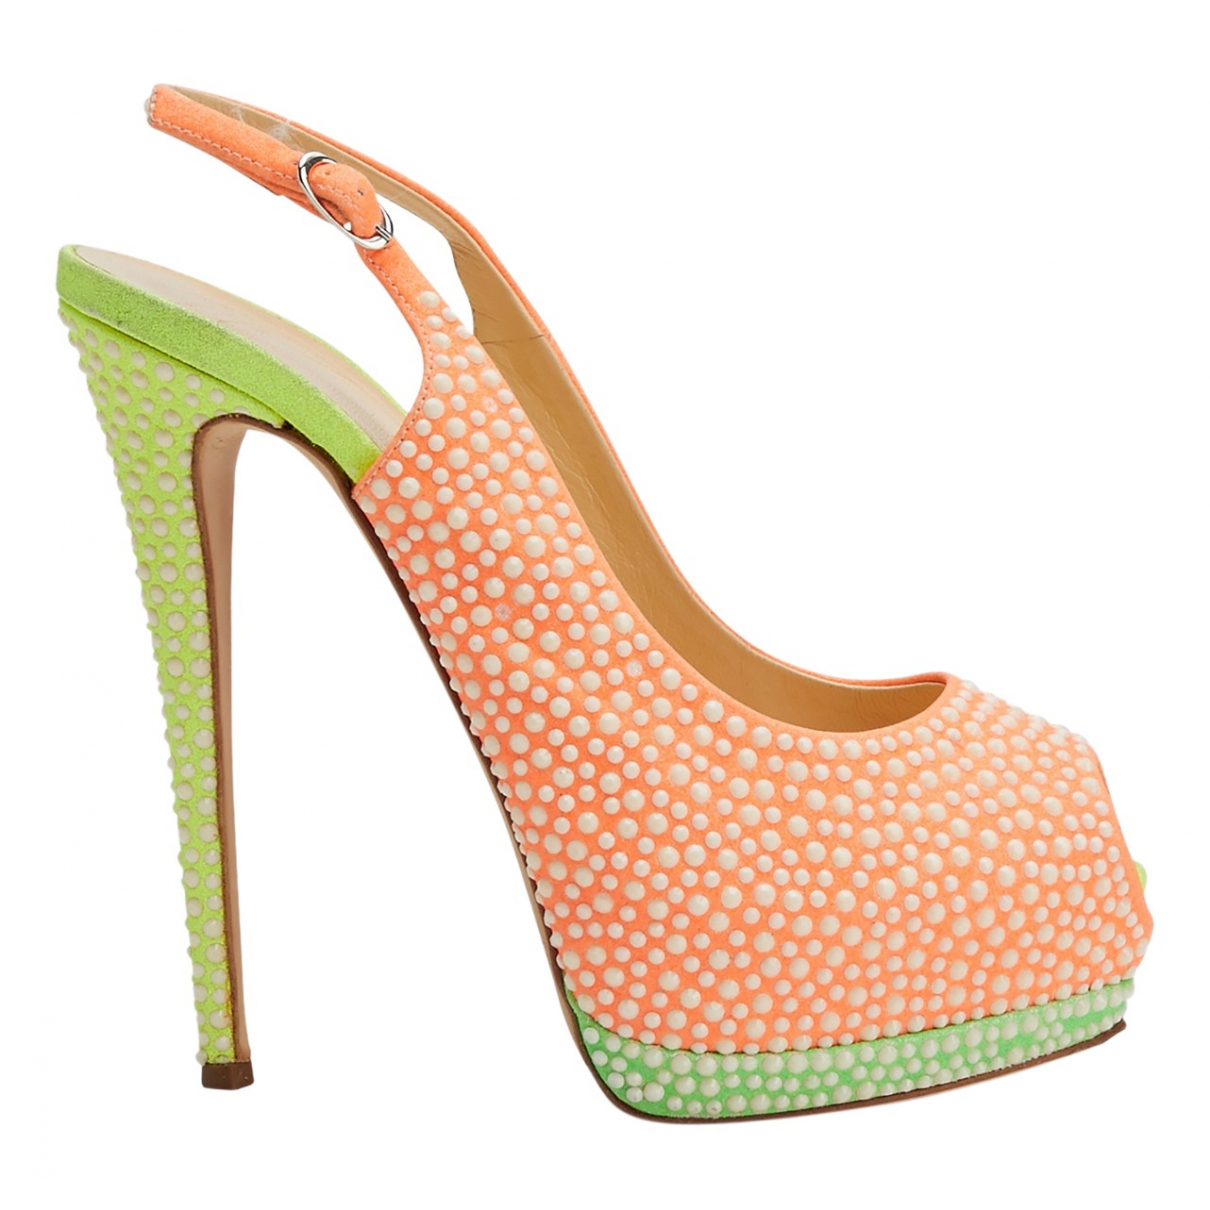 Giuseppe Zanotti \N Multicolour Leather Heels for Women 39 EU